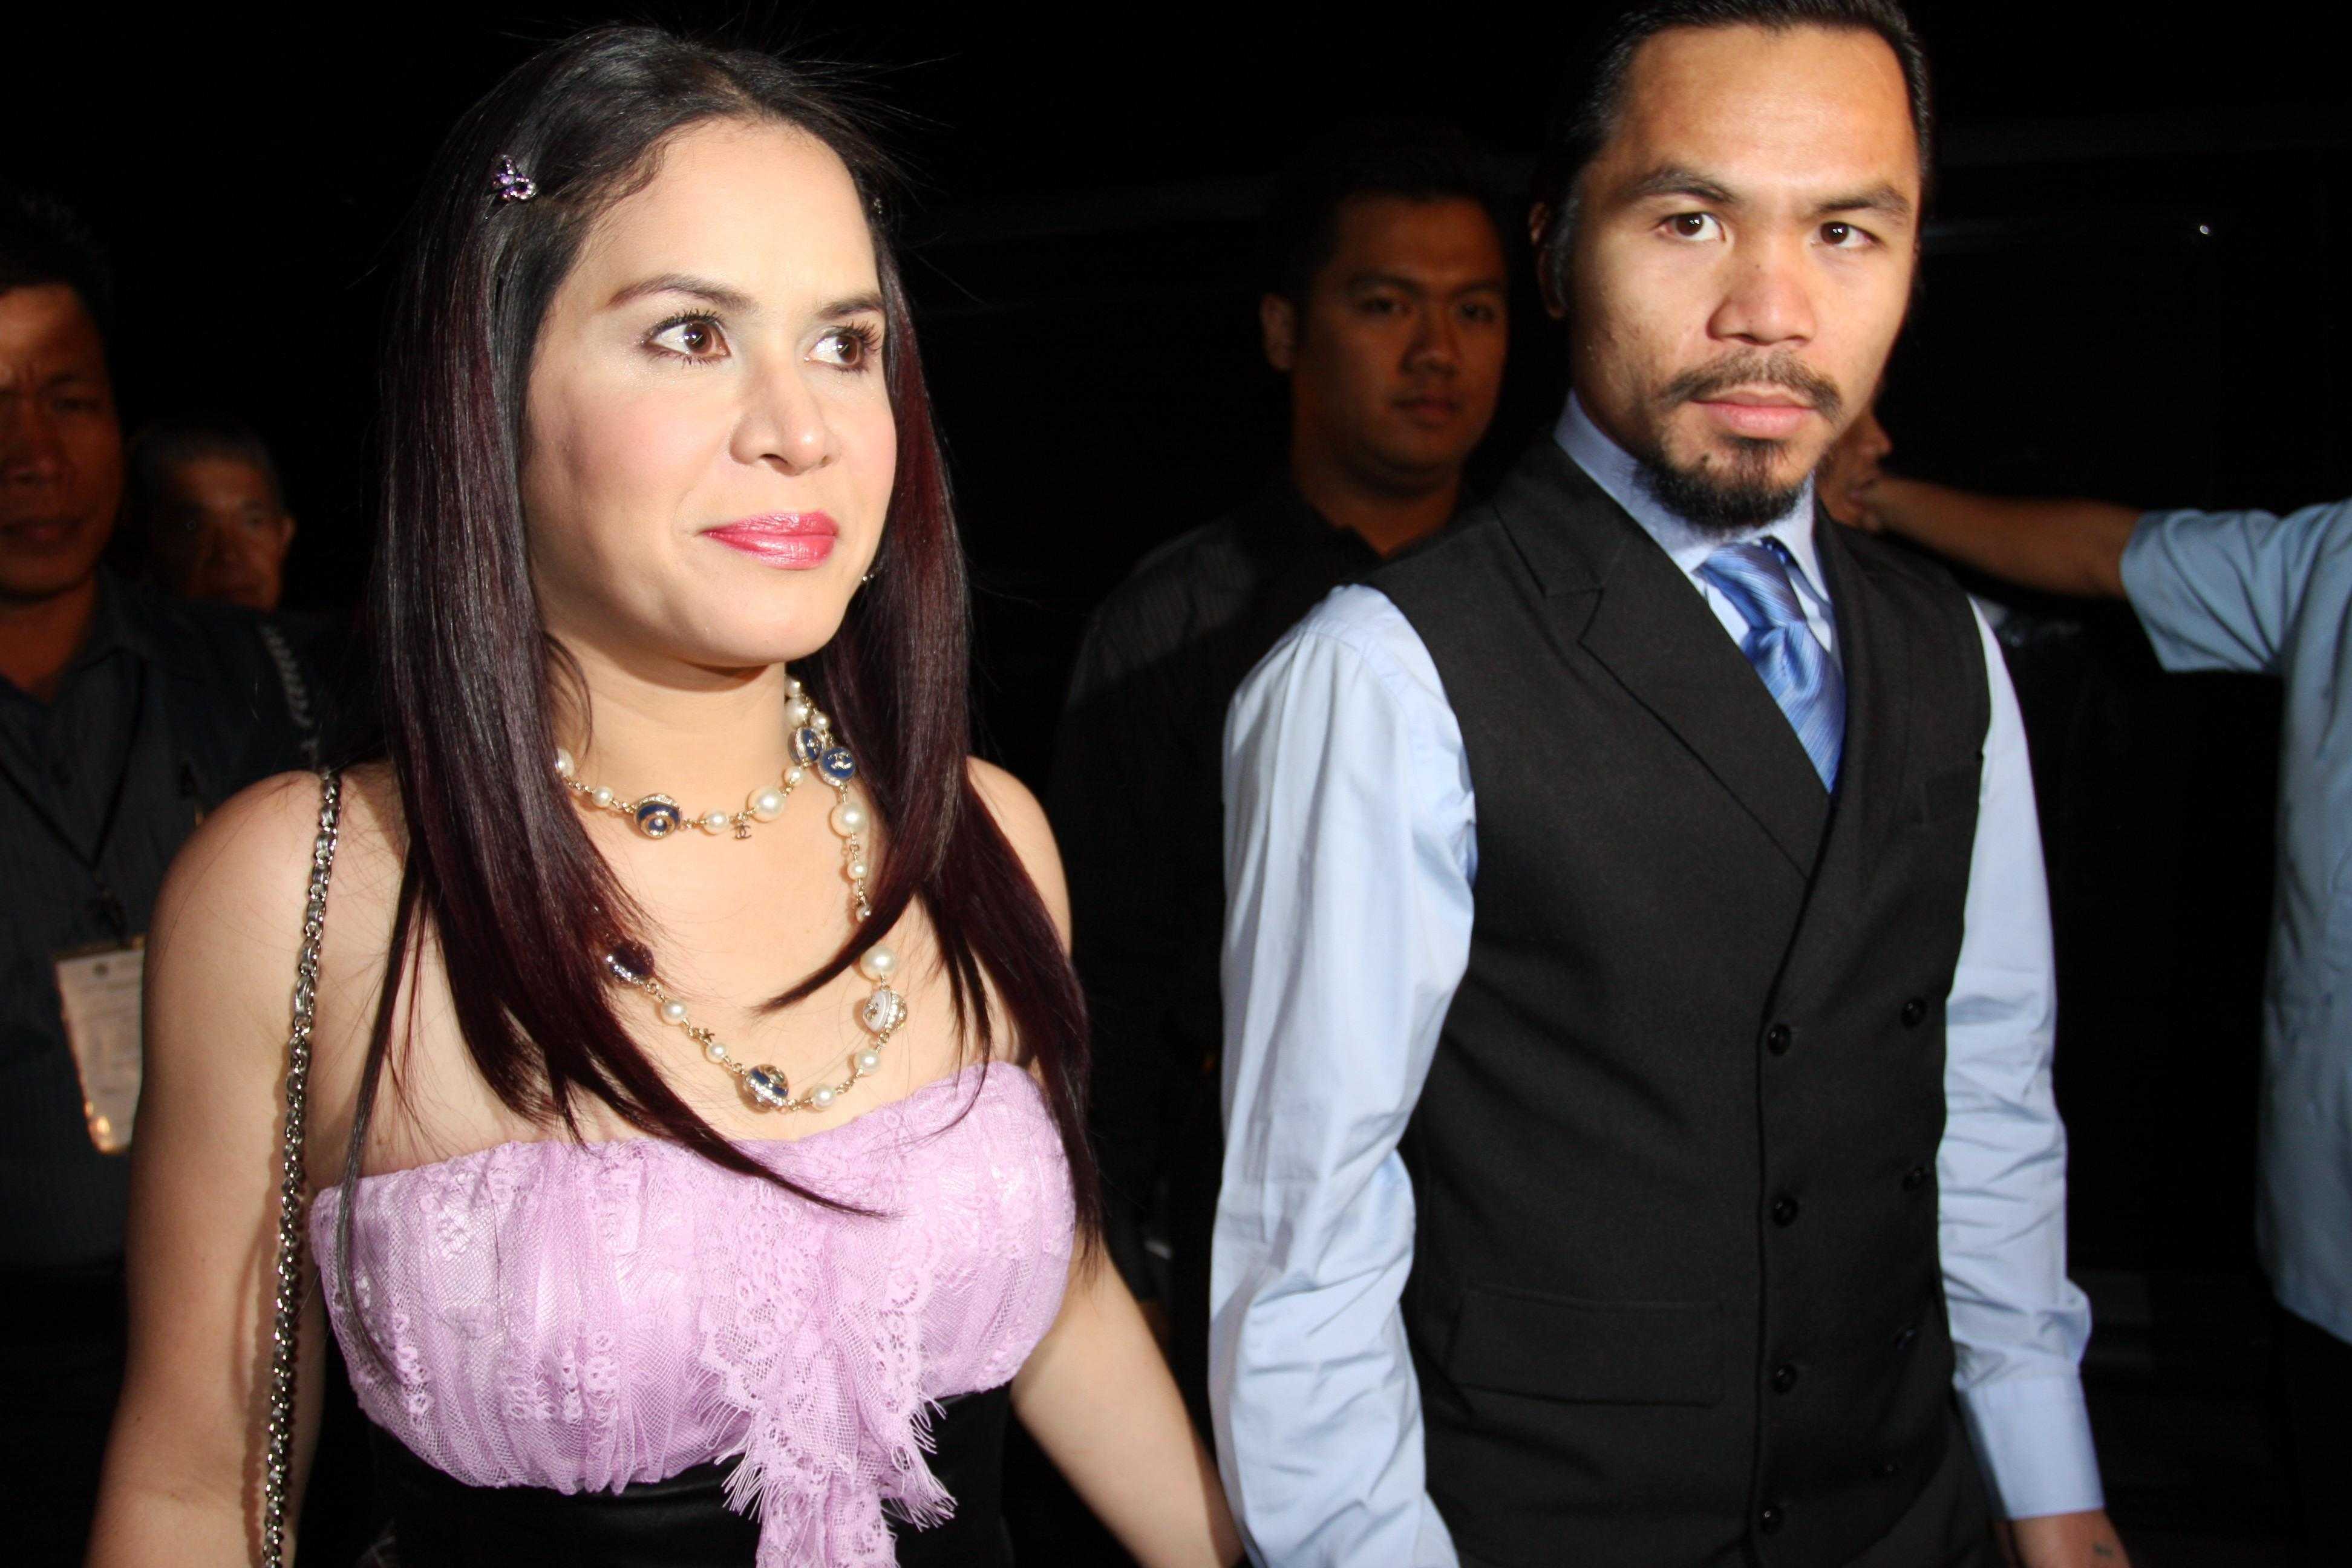 Who is Manny Pacquiao's wife Jinkee and how many children do they have?